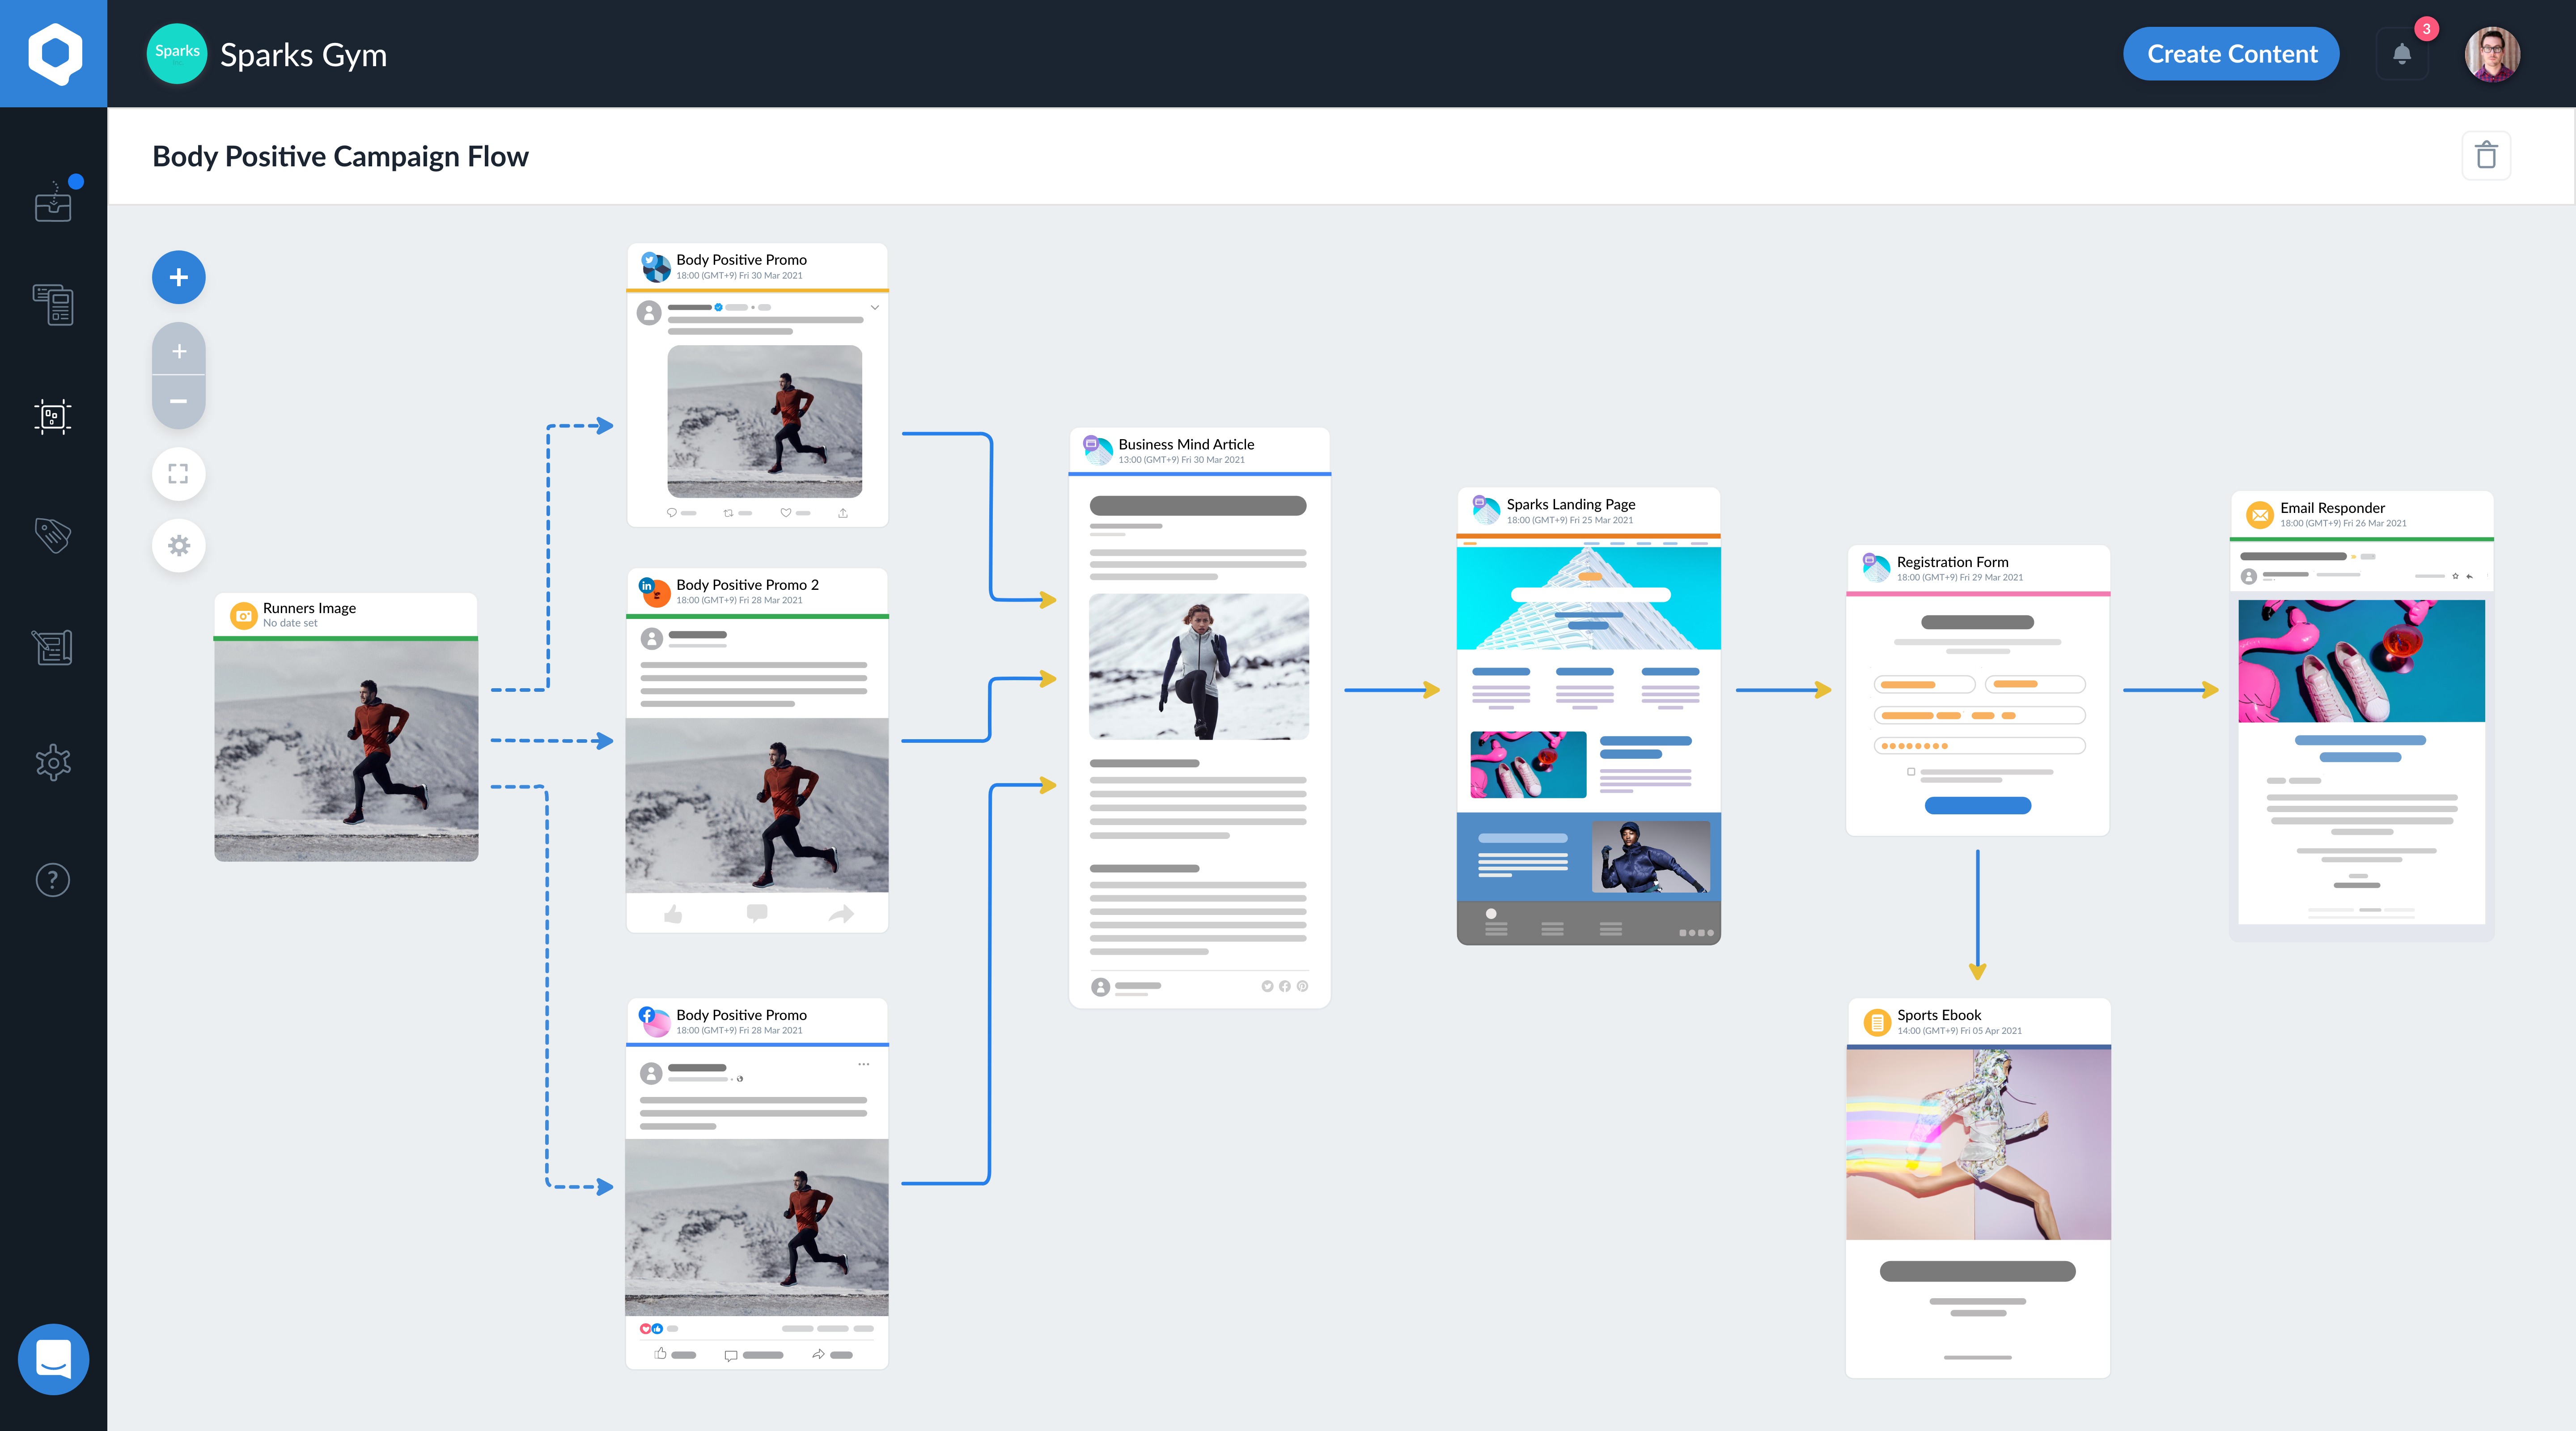 A collaborative canvas perfect for planning allows you to visualize complex campaigns and dependencies